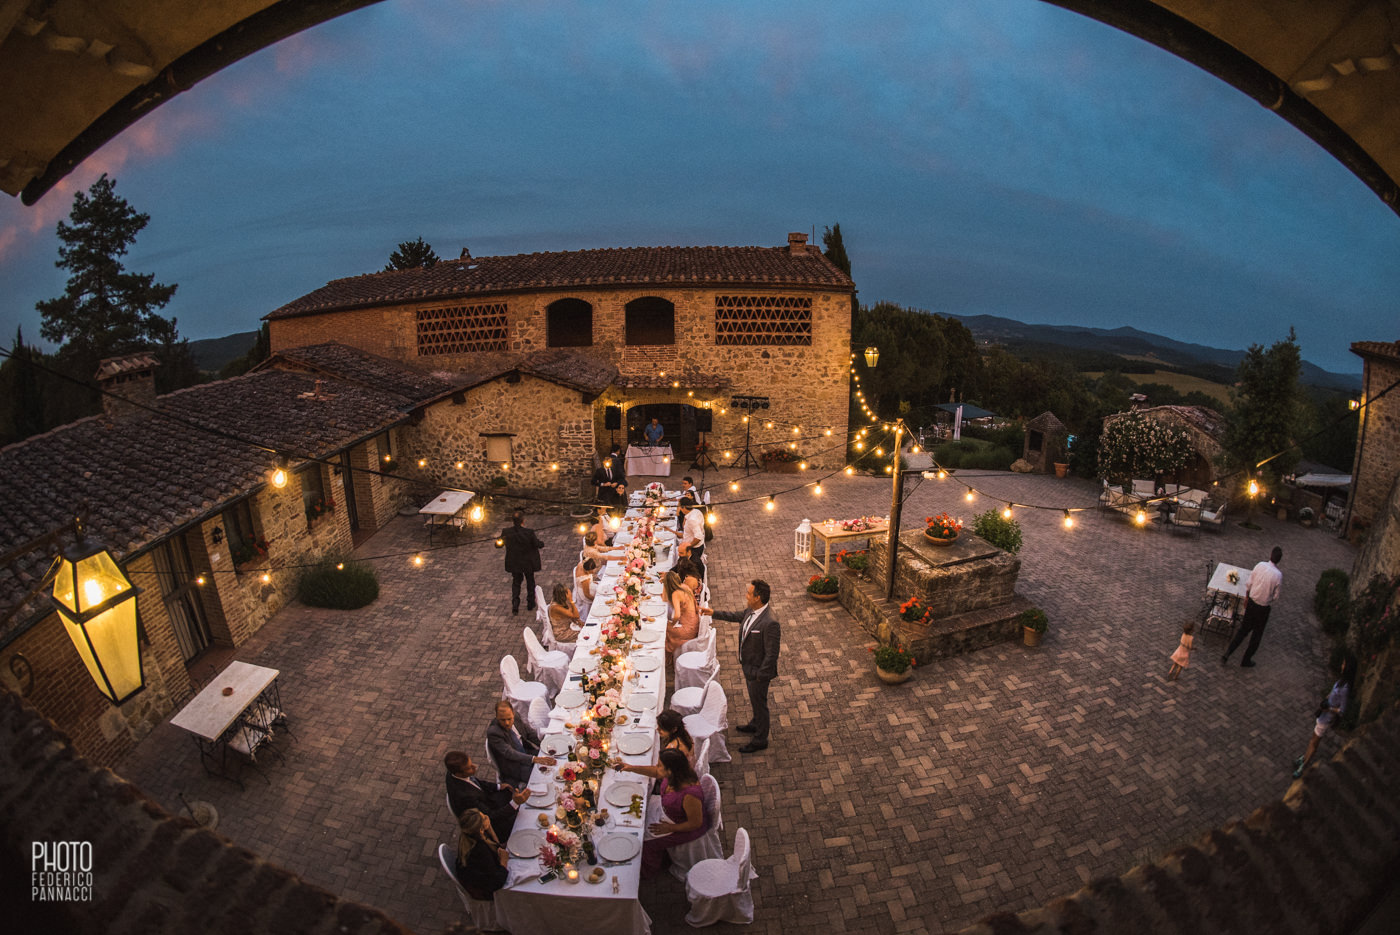 http://www.tenutadipapena.it/wp-content/uploads/2016/11/112-DestinationWedding-SanGalgano.jpg